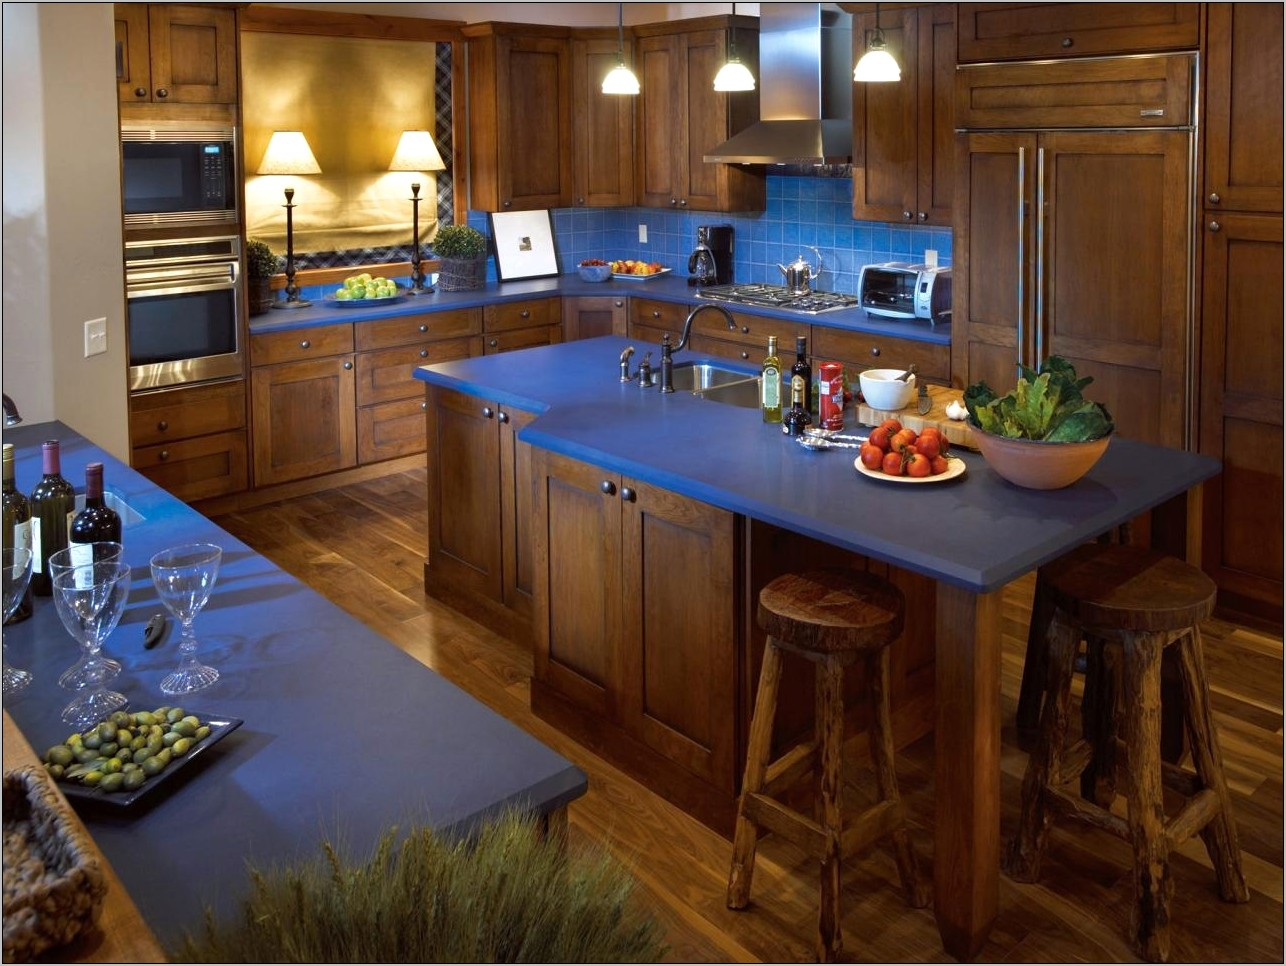 Decorating Kitchen With Blue Countertops